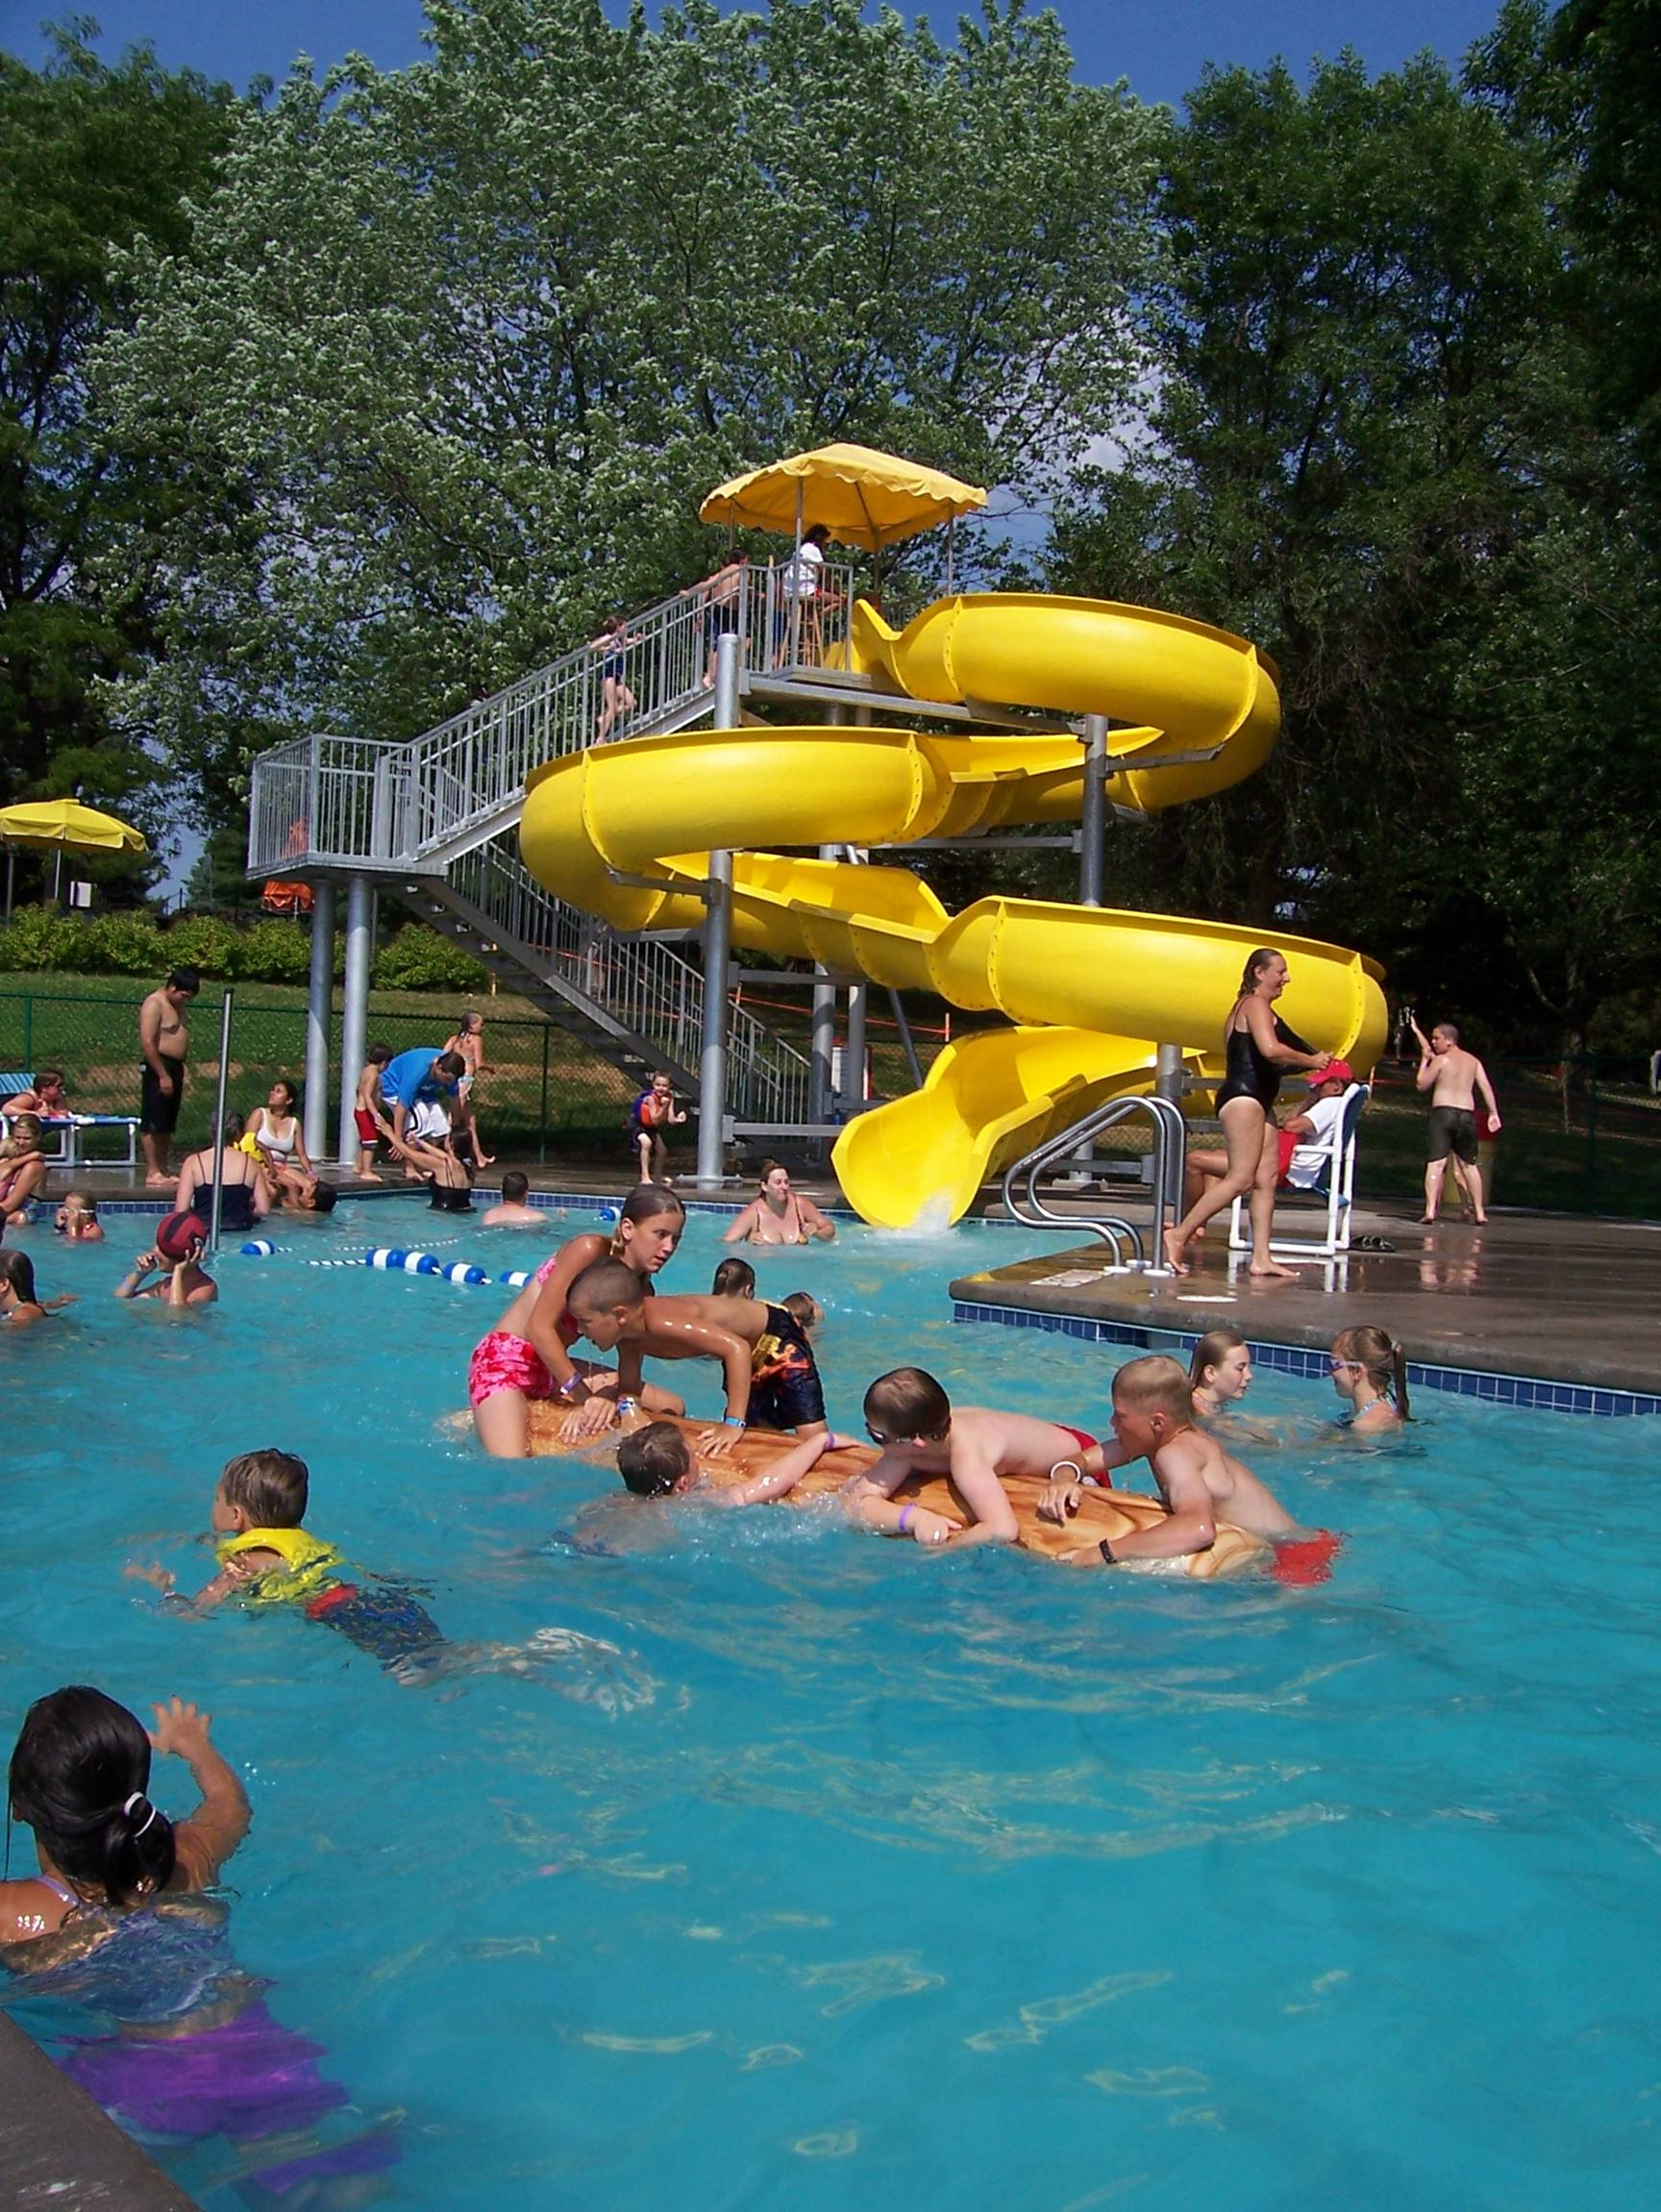 Mcu680 7 yellow waterslide